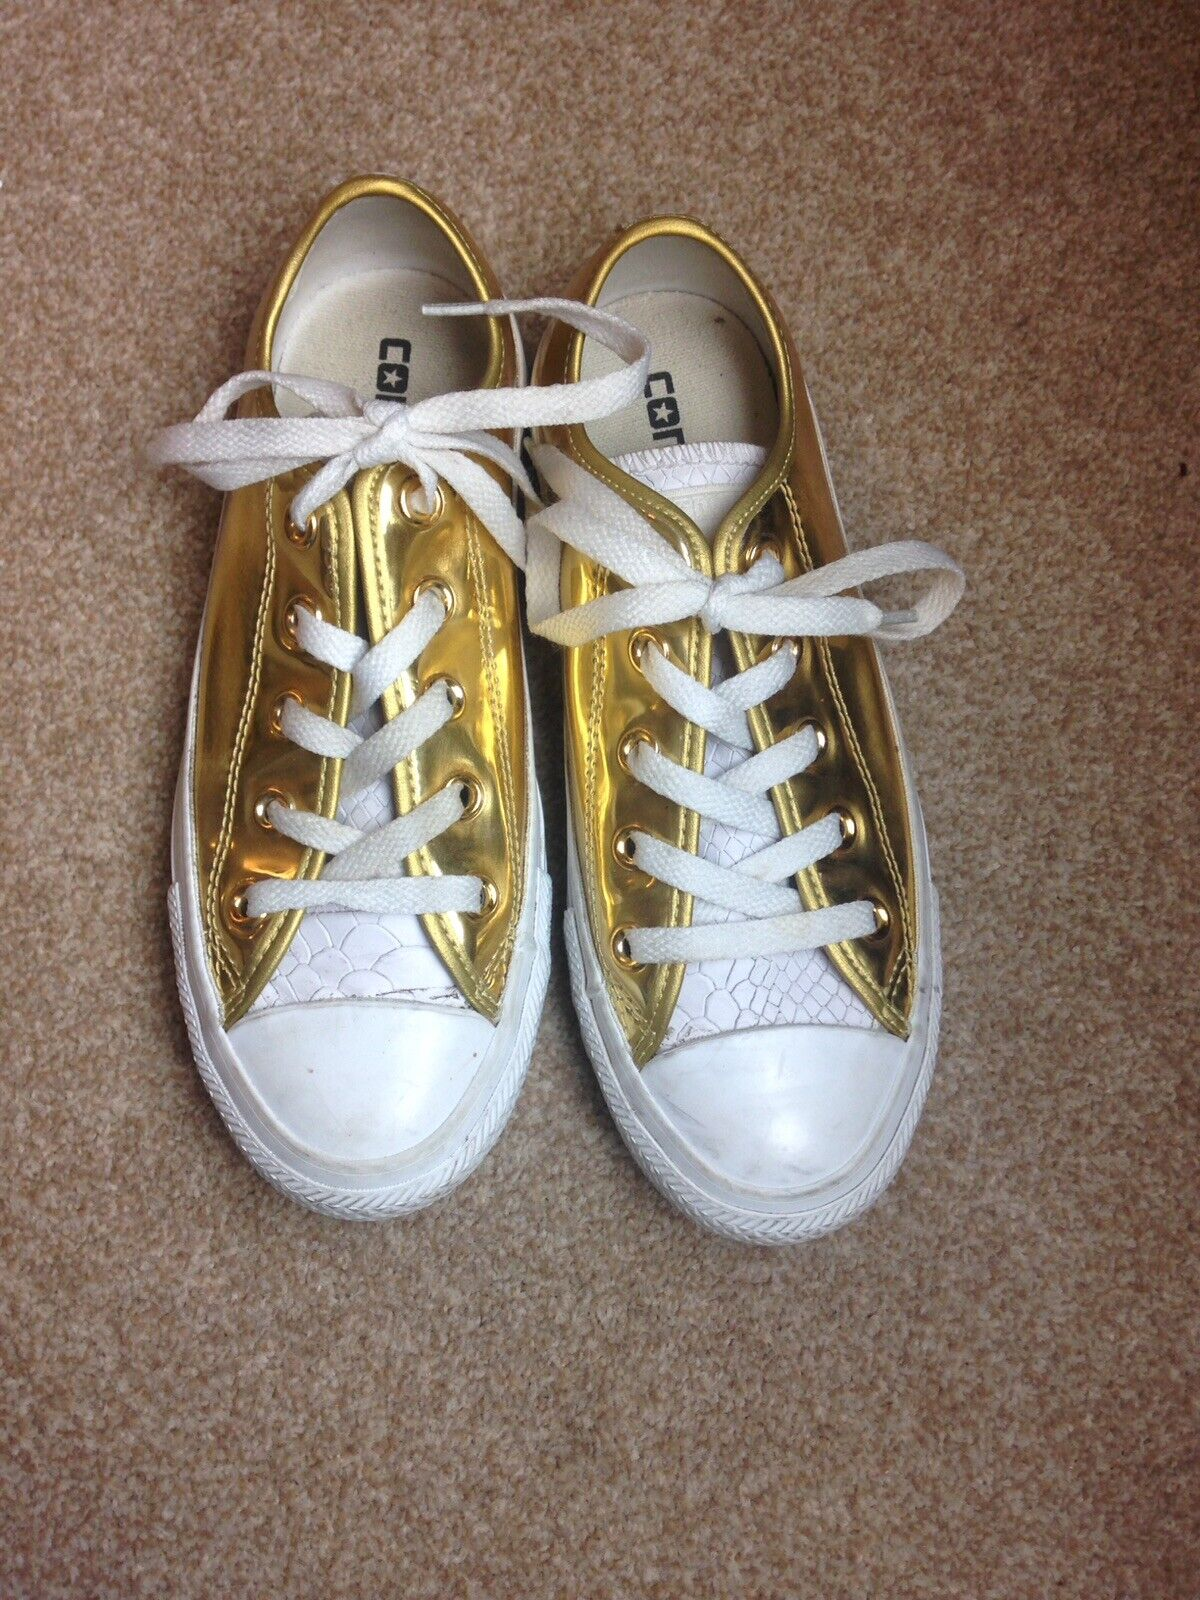 Gold Exclusive Rare Croc Low Top Converse All Star 3 35